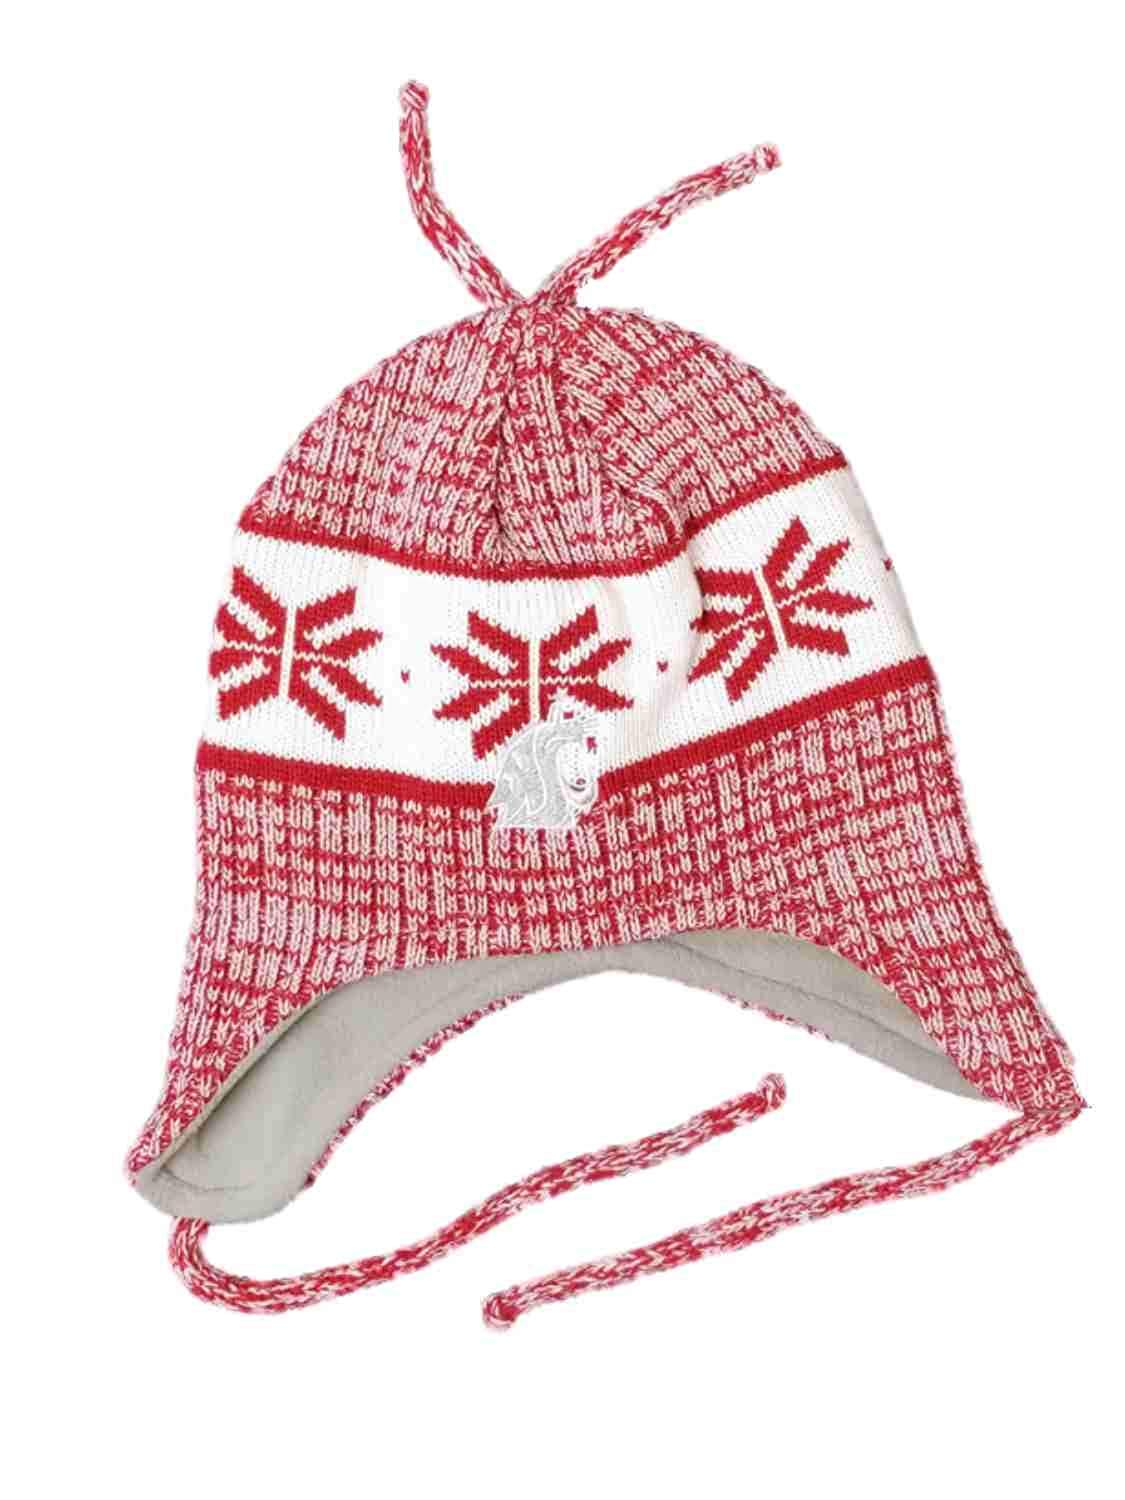 d9bbbb47339 Get Quotations · Fan Favorite Men s White with Maroon WSU Washington State  University Trapper Beanie Stocking Cap Hat